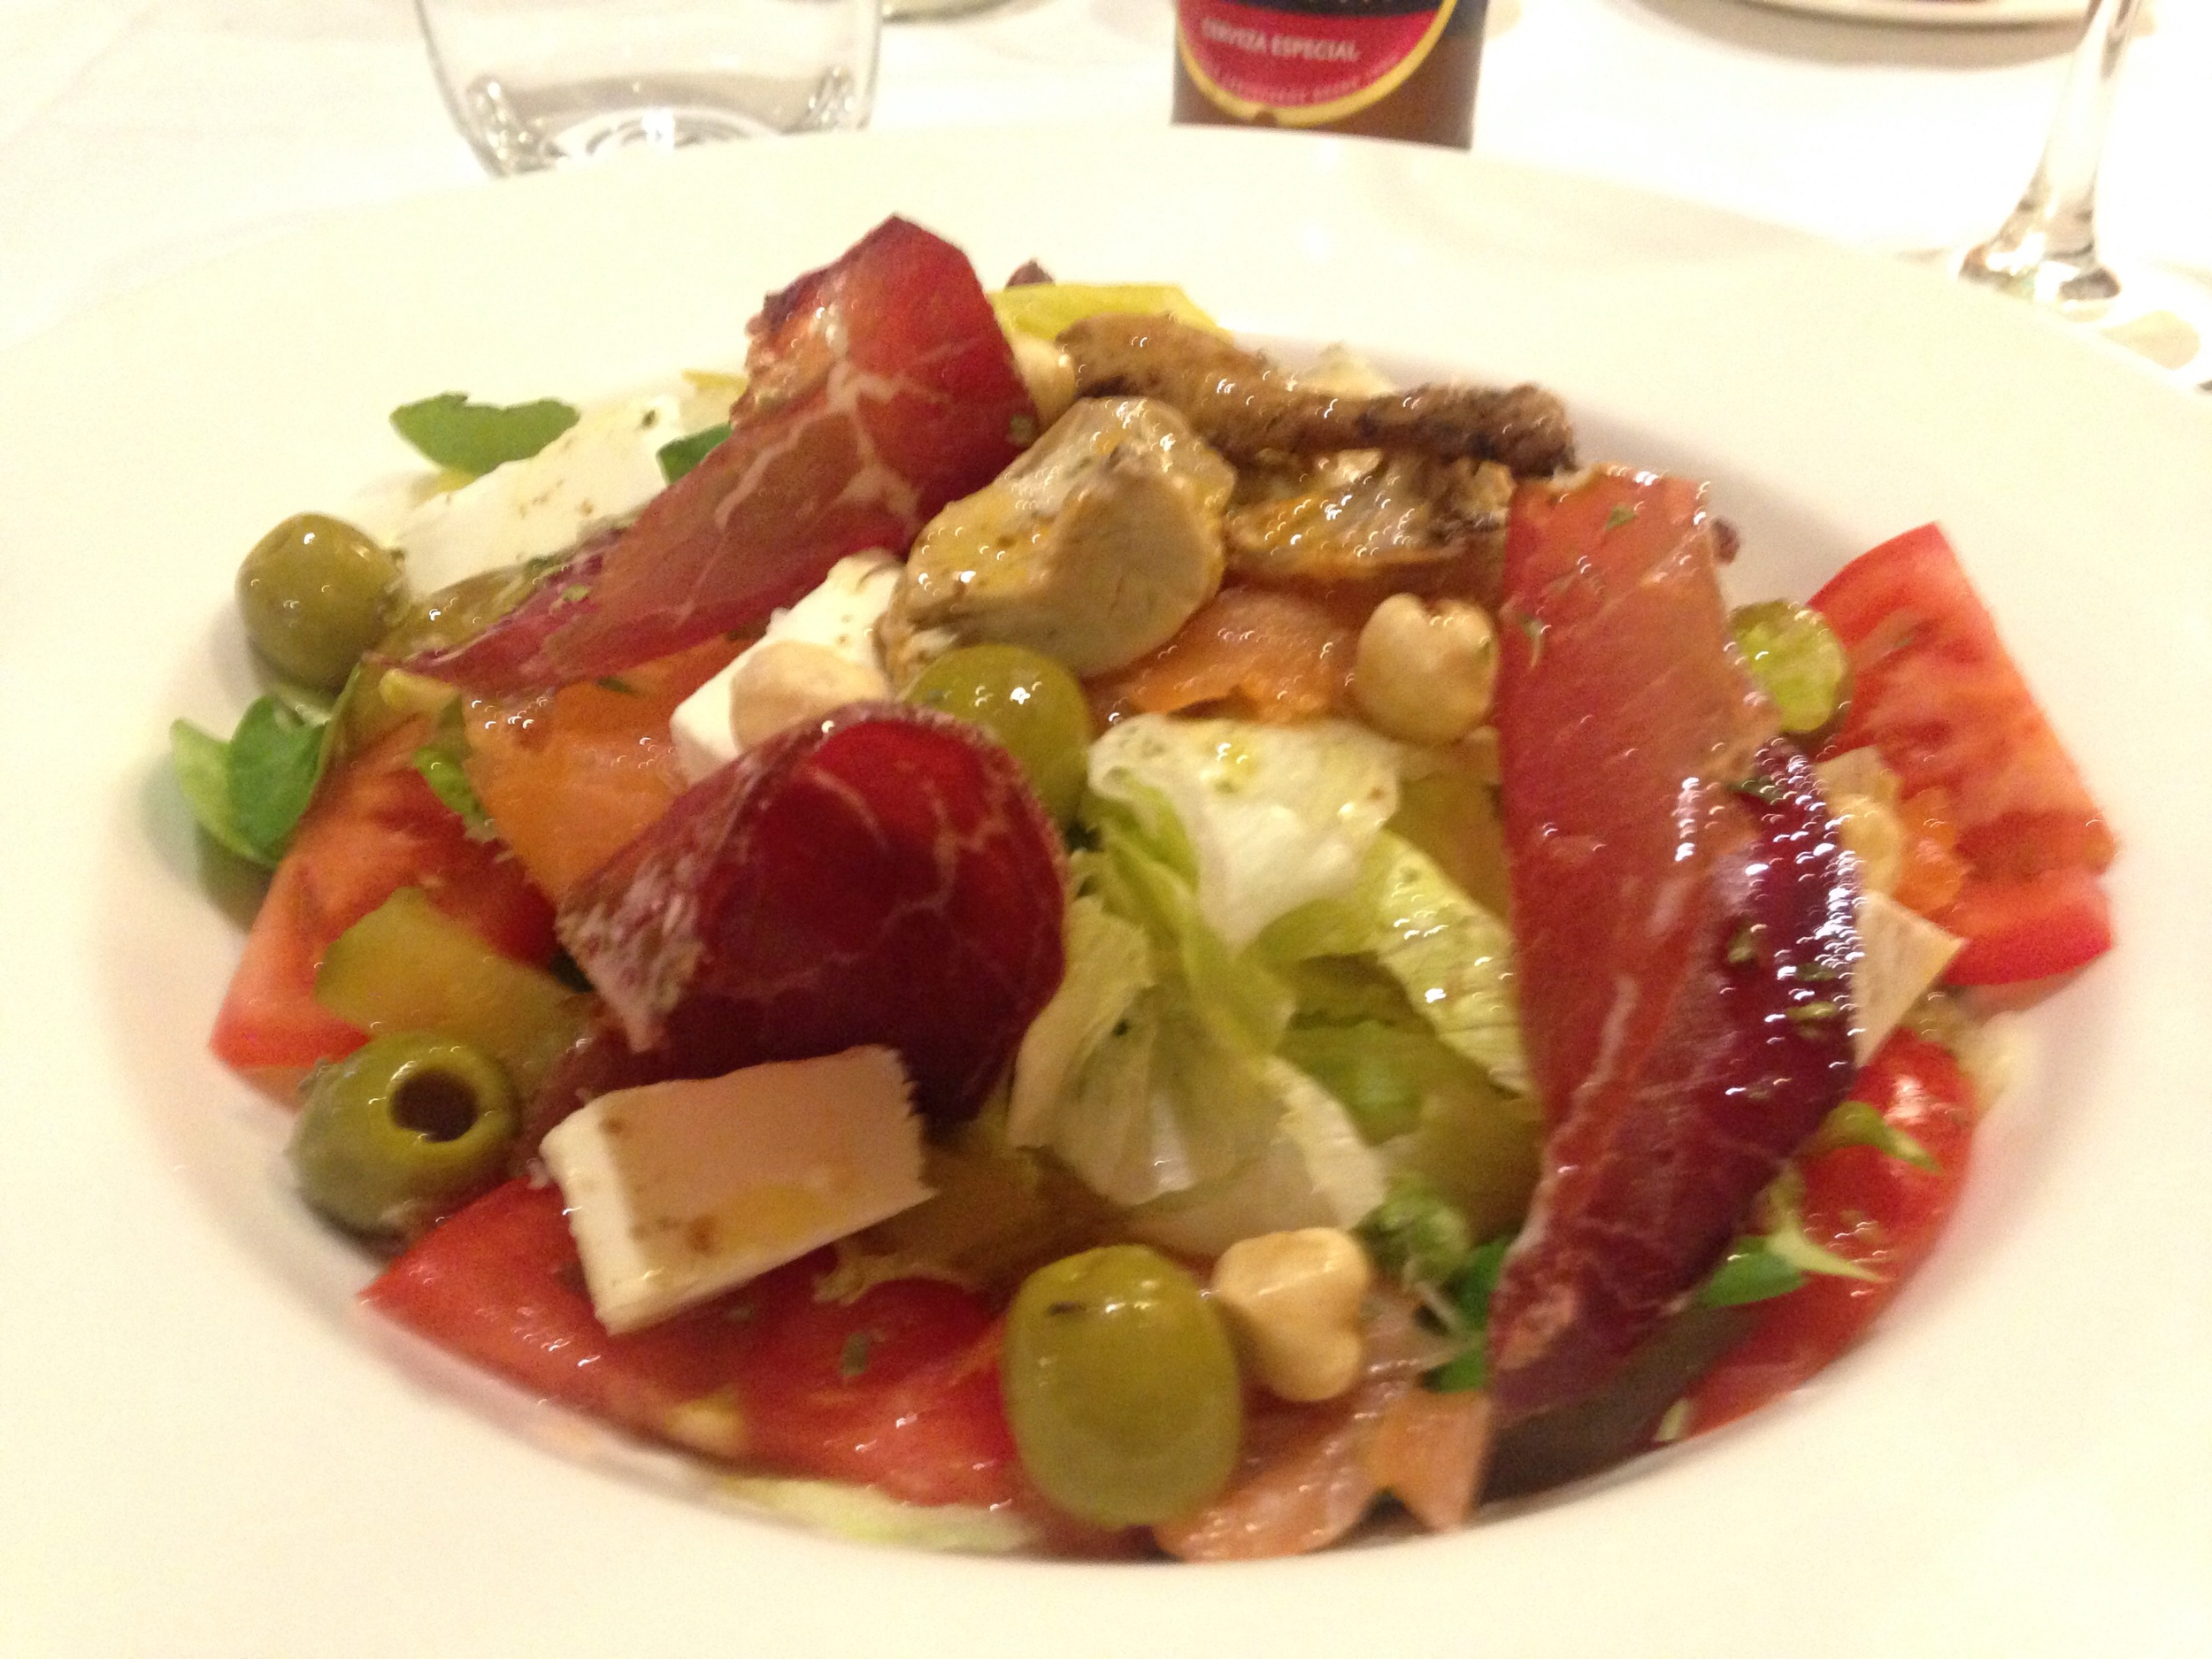 Ensalada mixta with local cheese, lomo, olives and more.